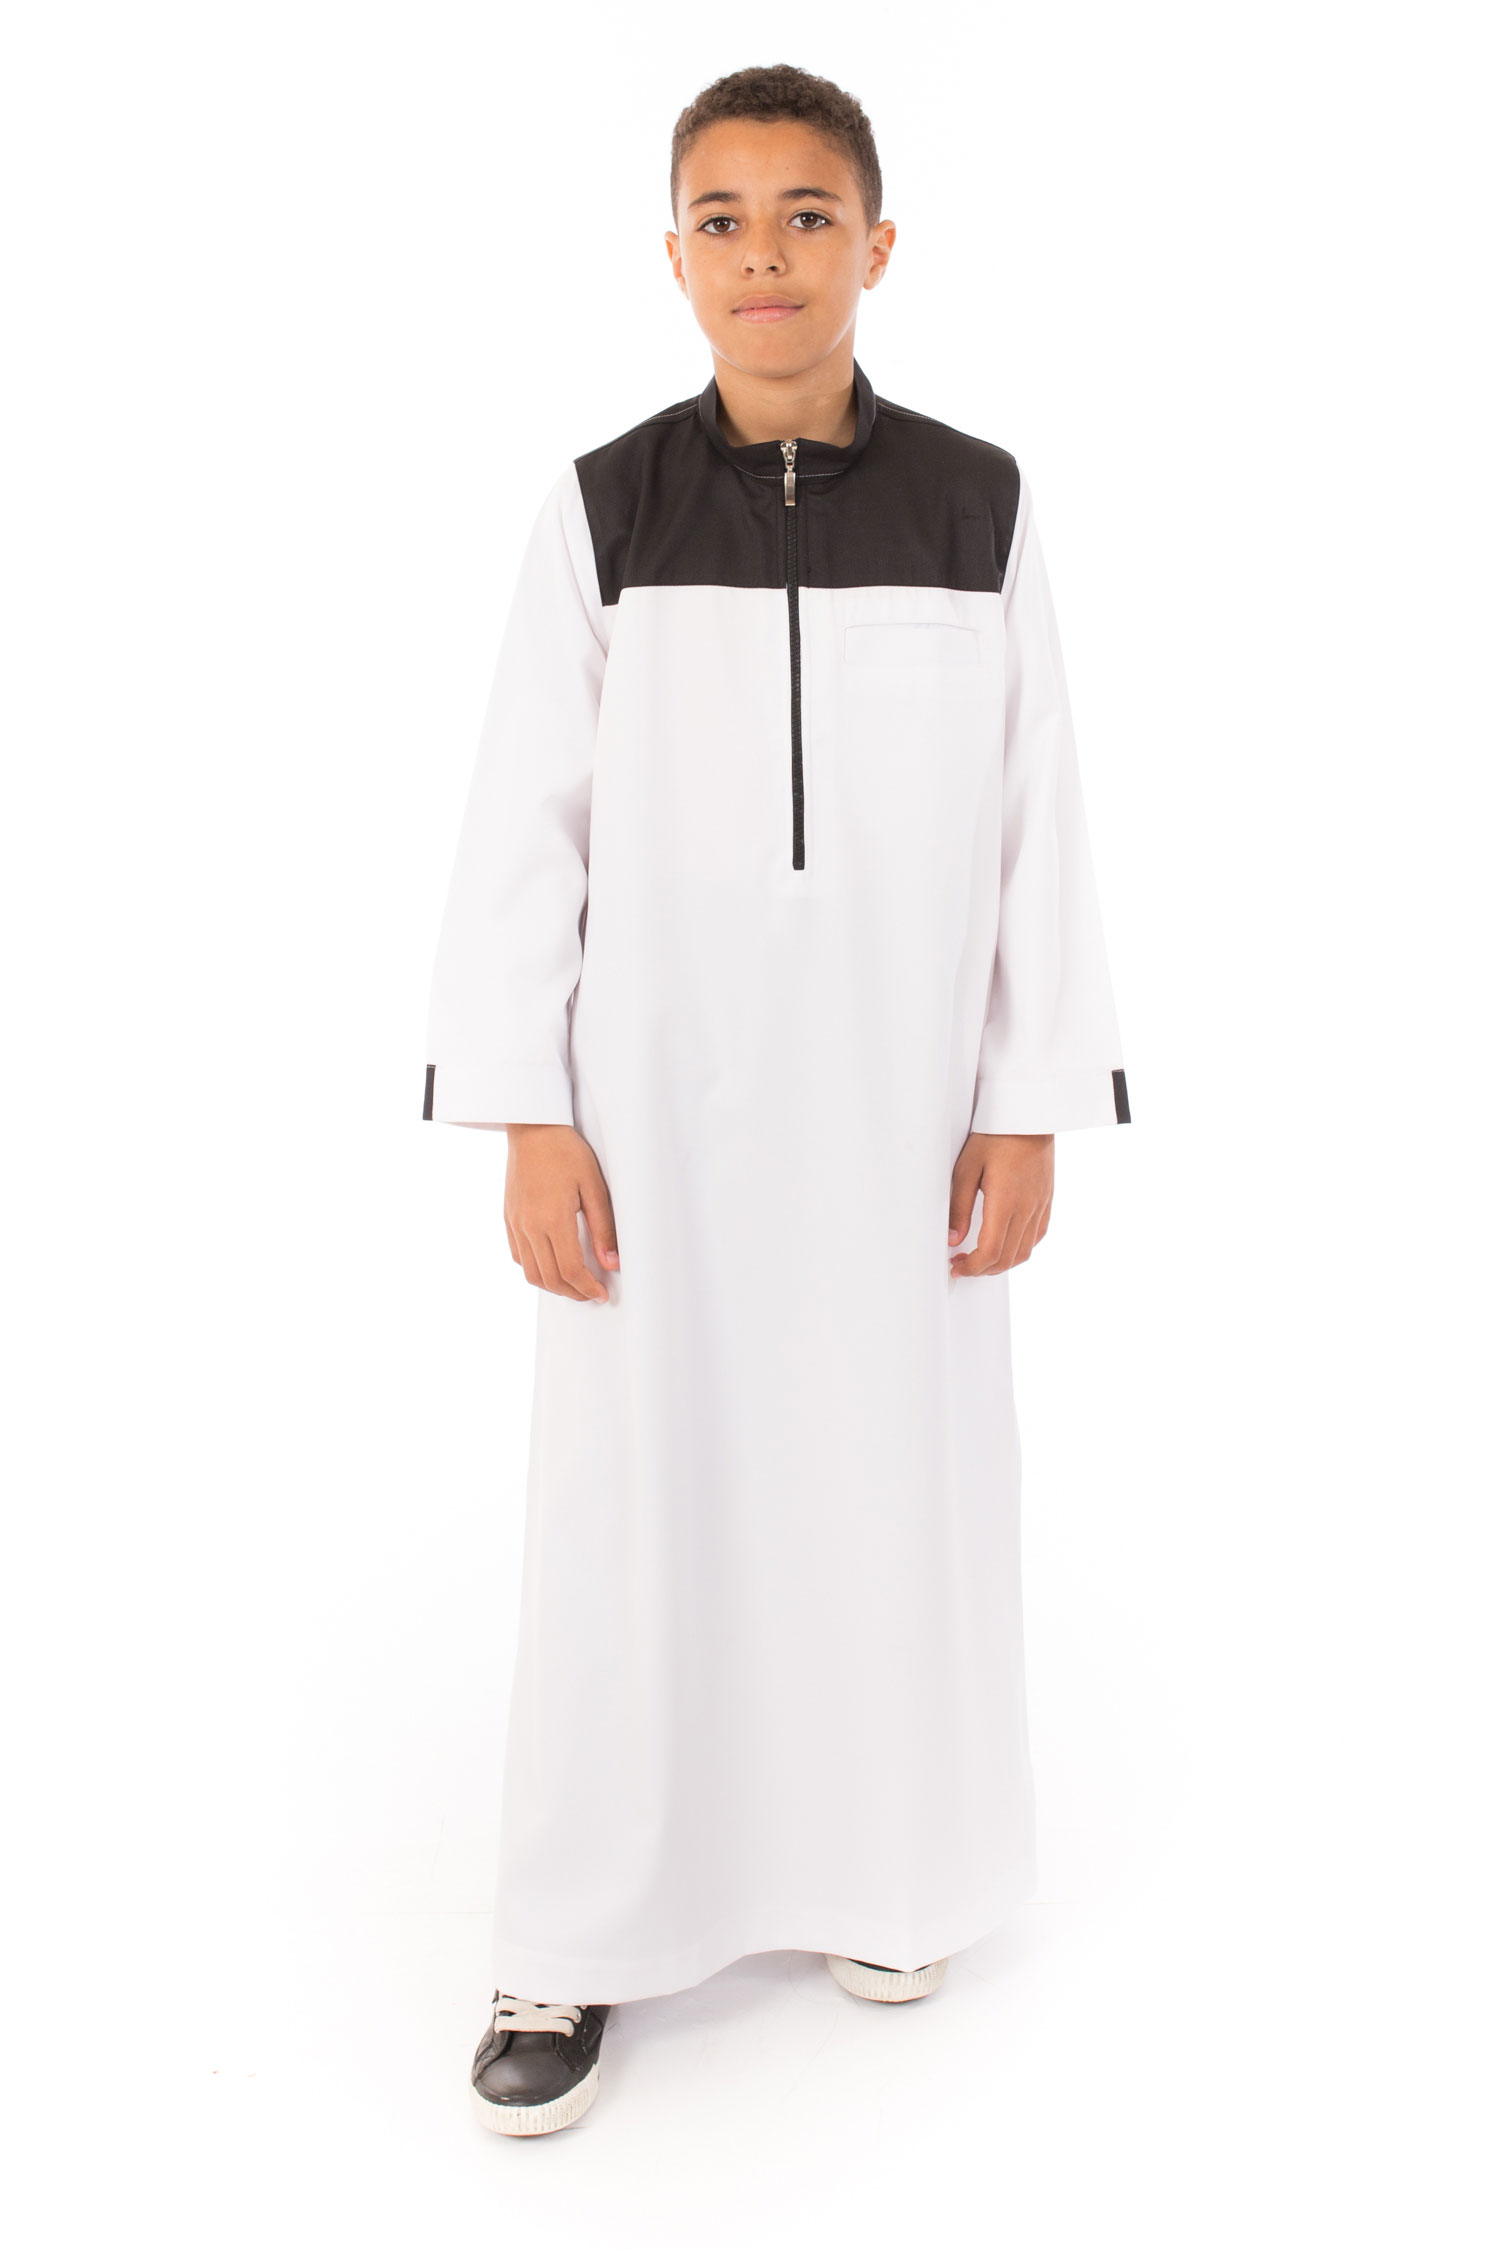 White - Black contrast Kids Islamic Jubba